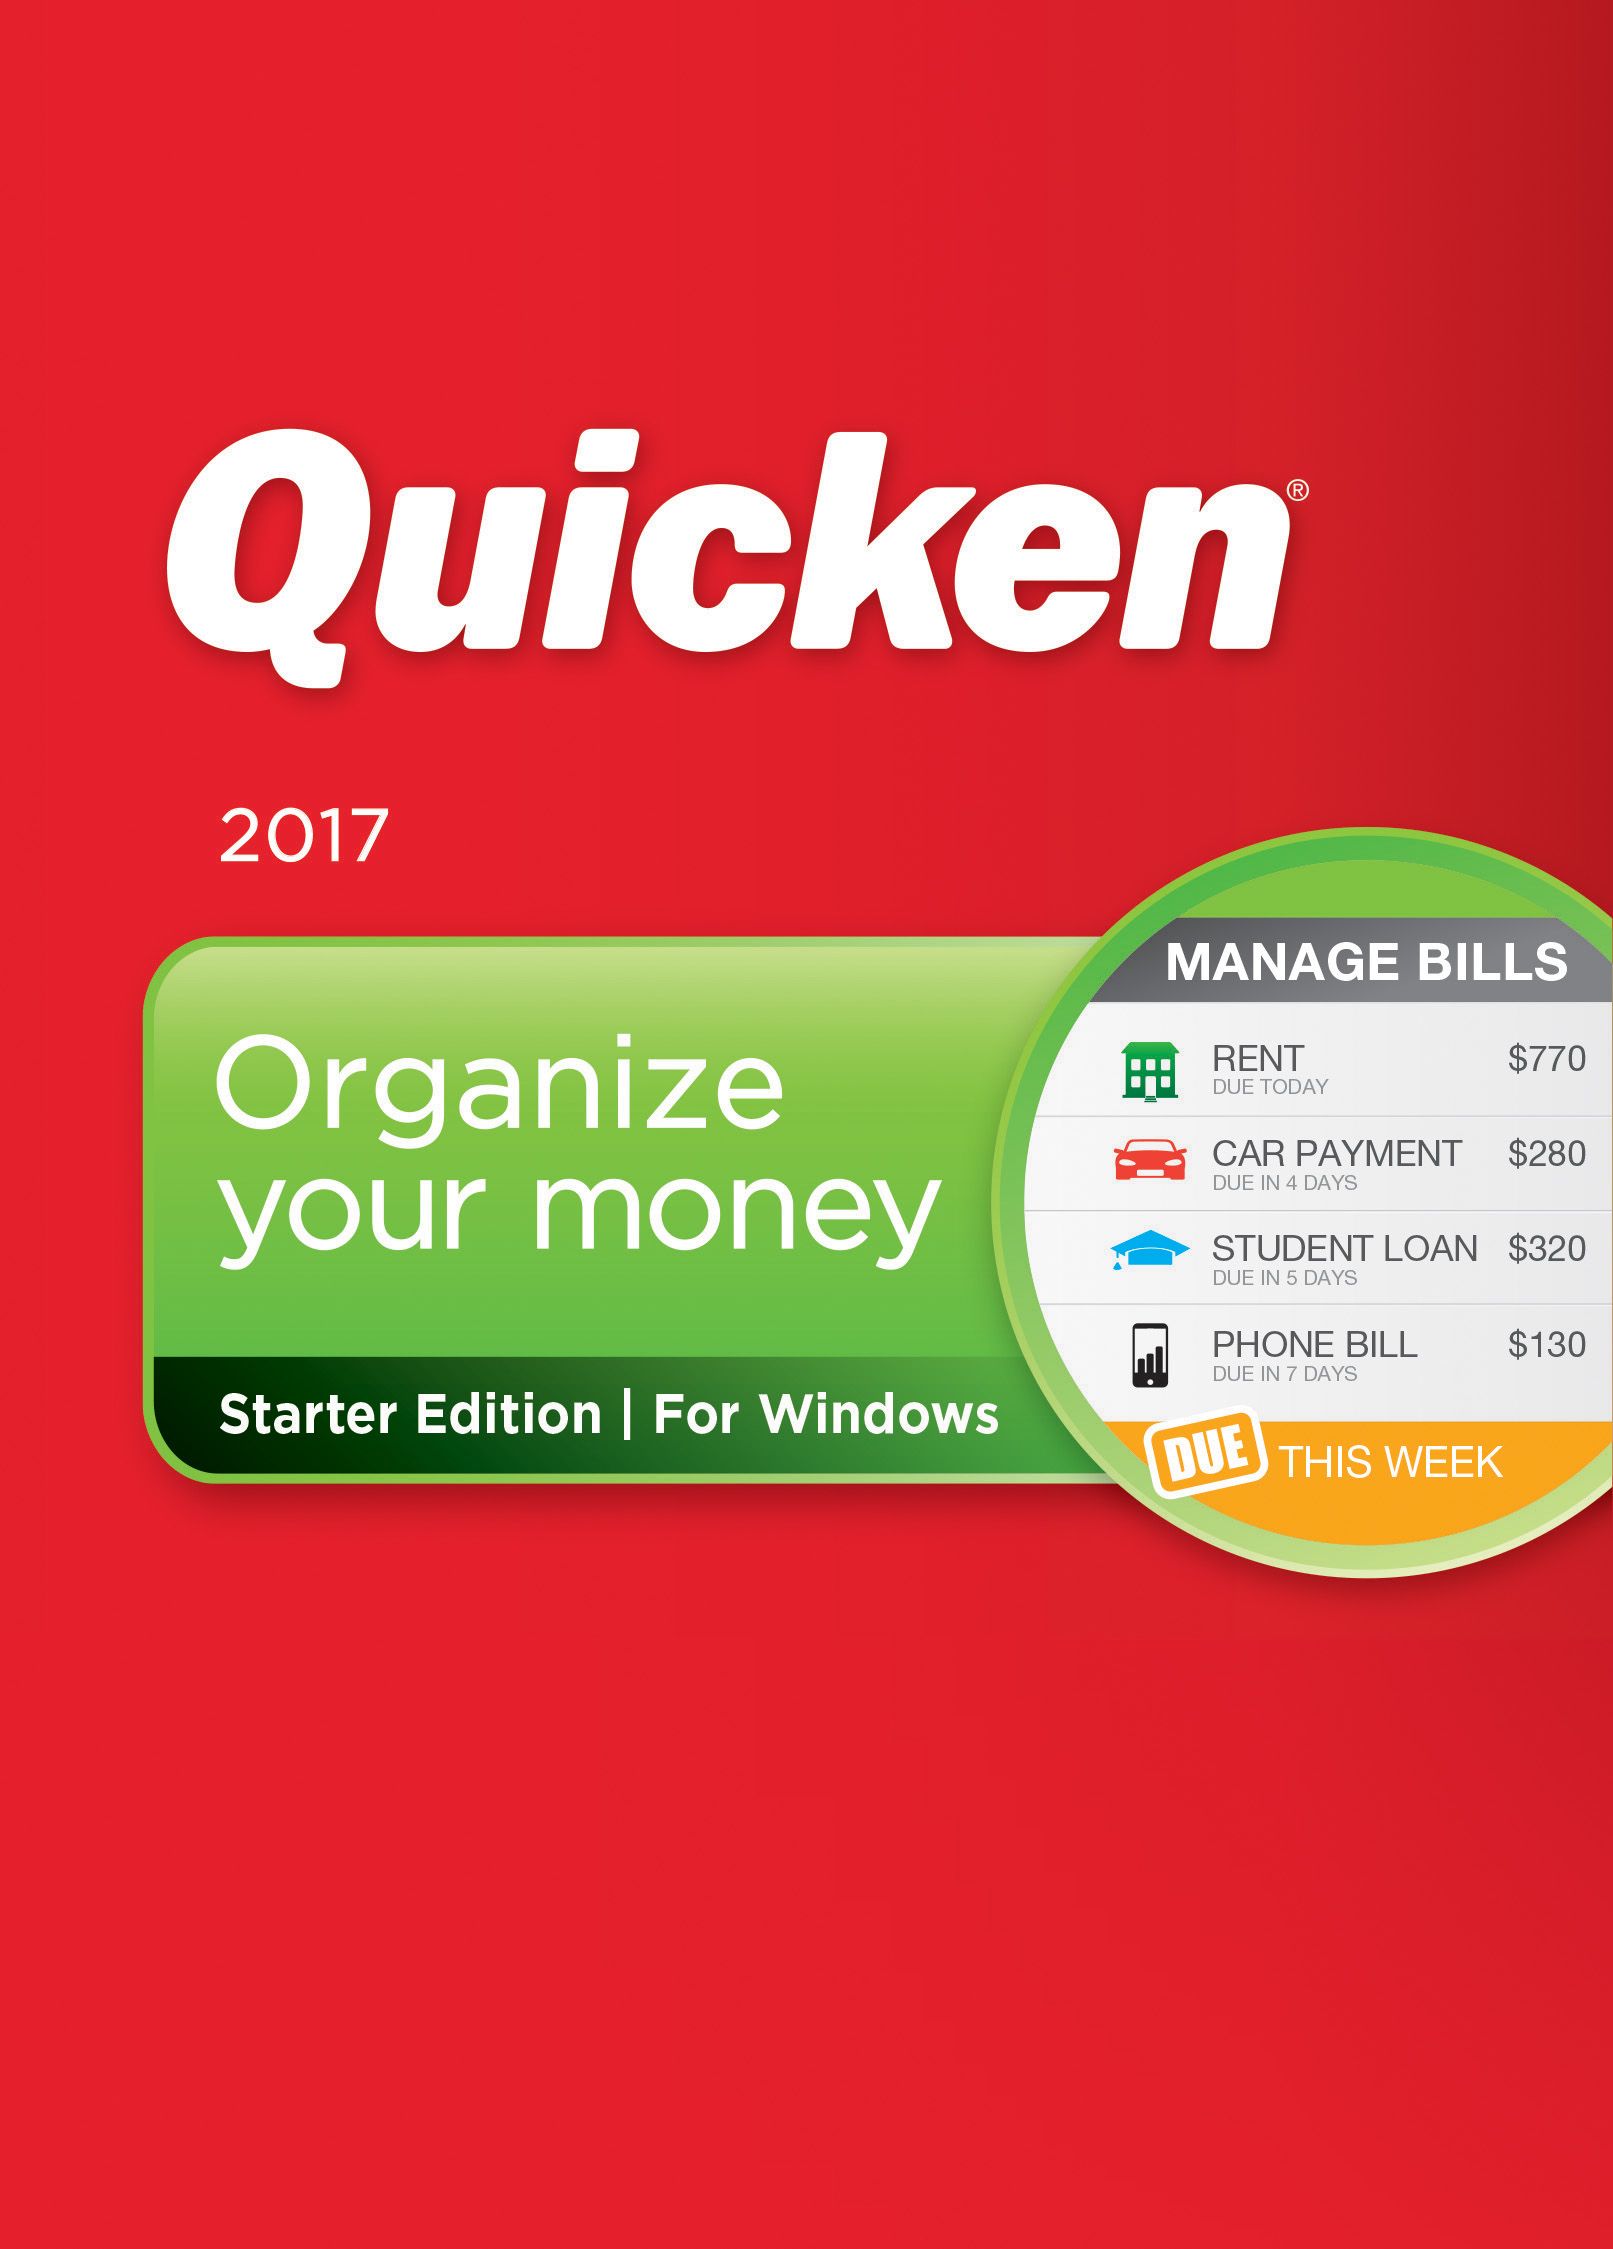 quicken-starter-edition-2017-personal-finance-budgeting-software-download